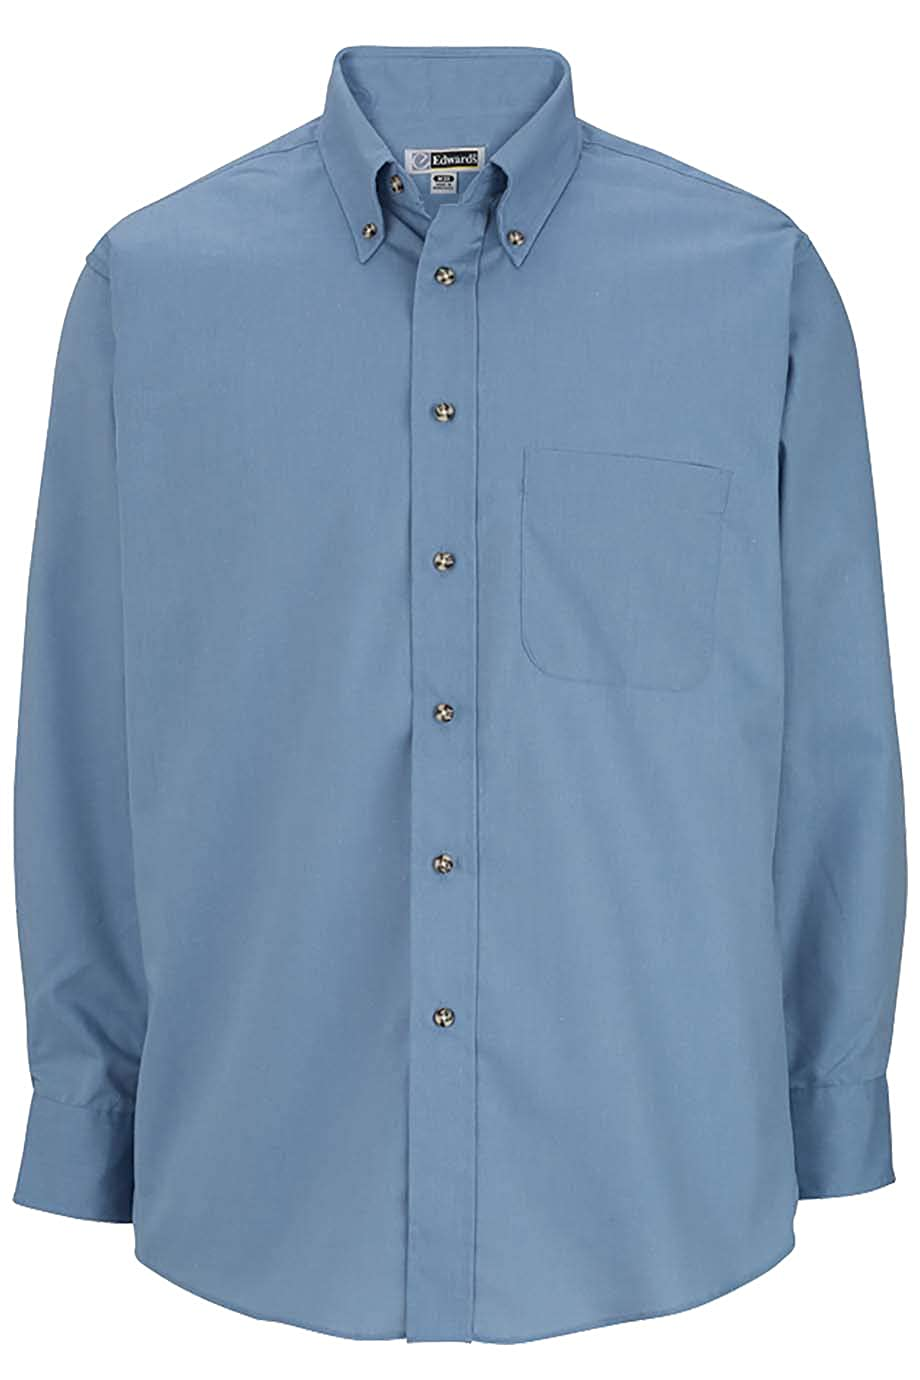 Edwards Garment Mens Performance Fashion Poplin Long Sleeve Shirt